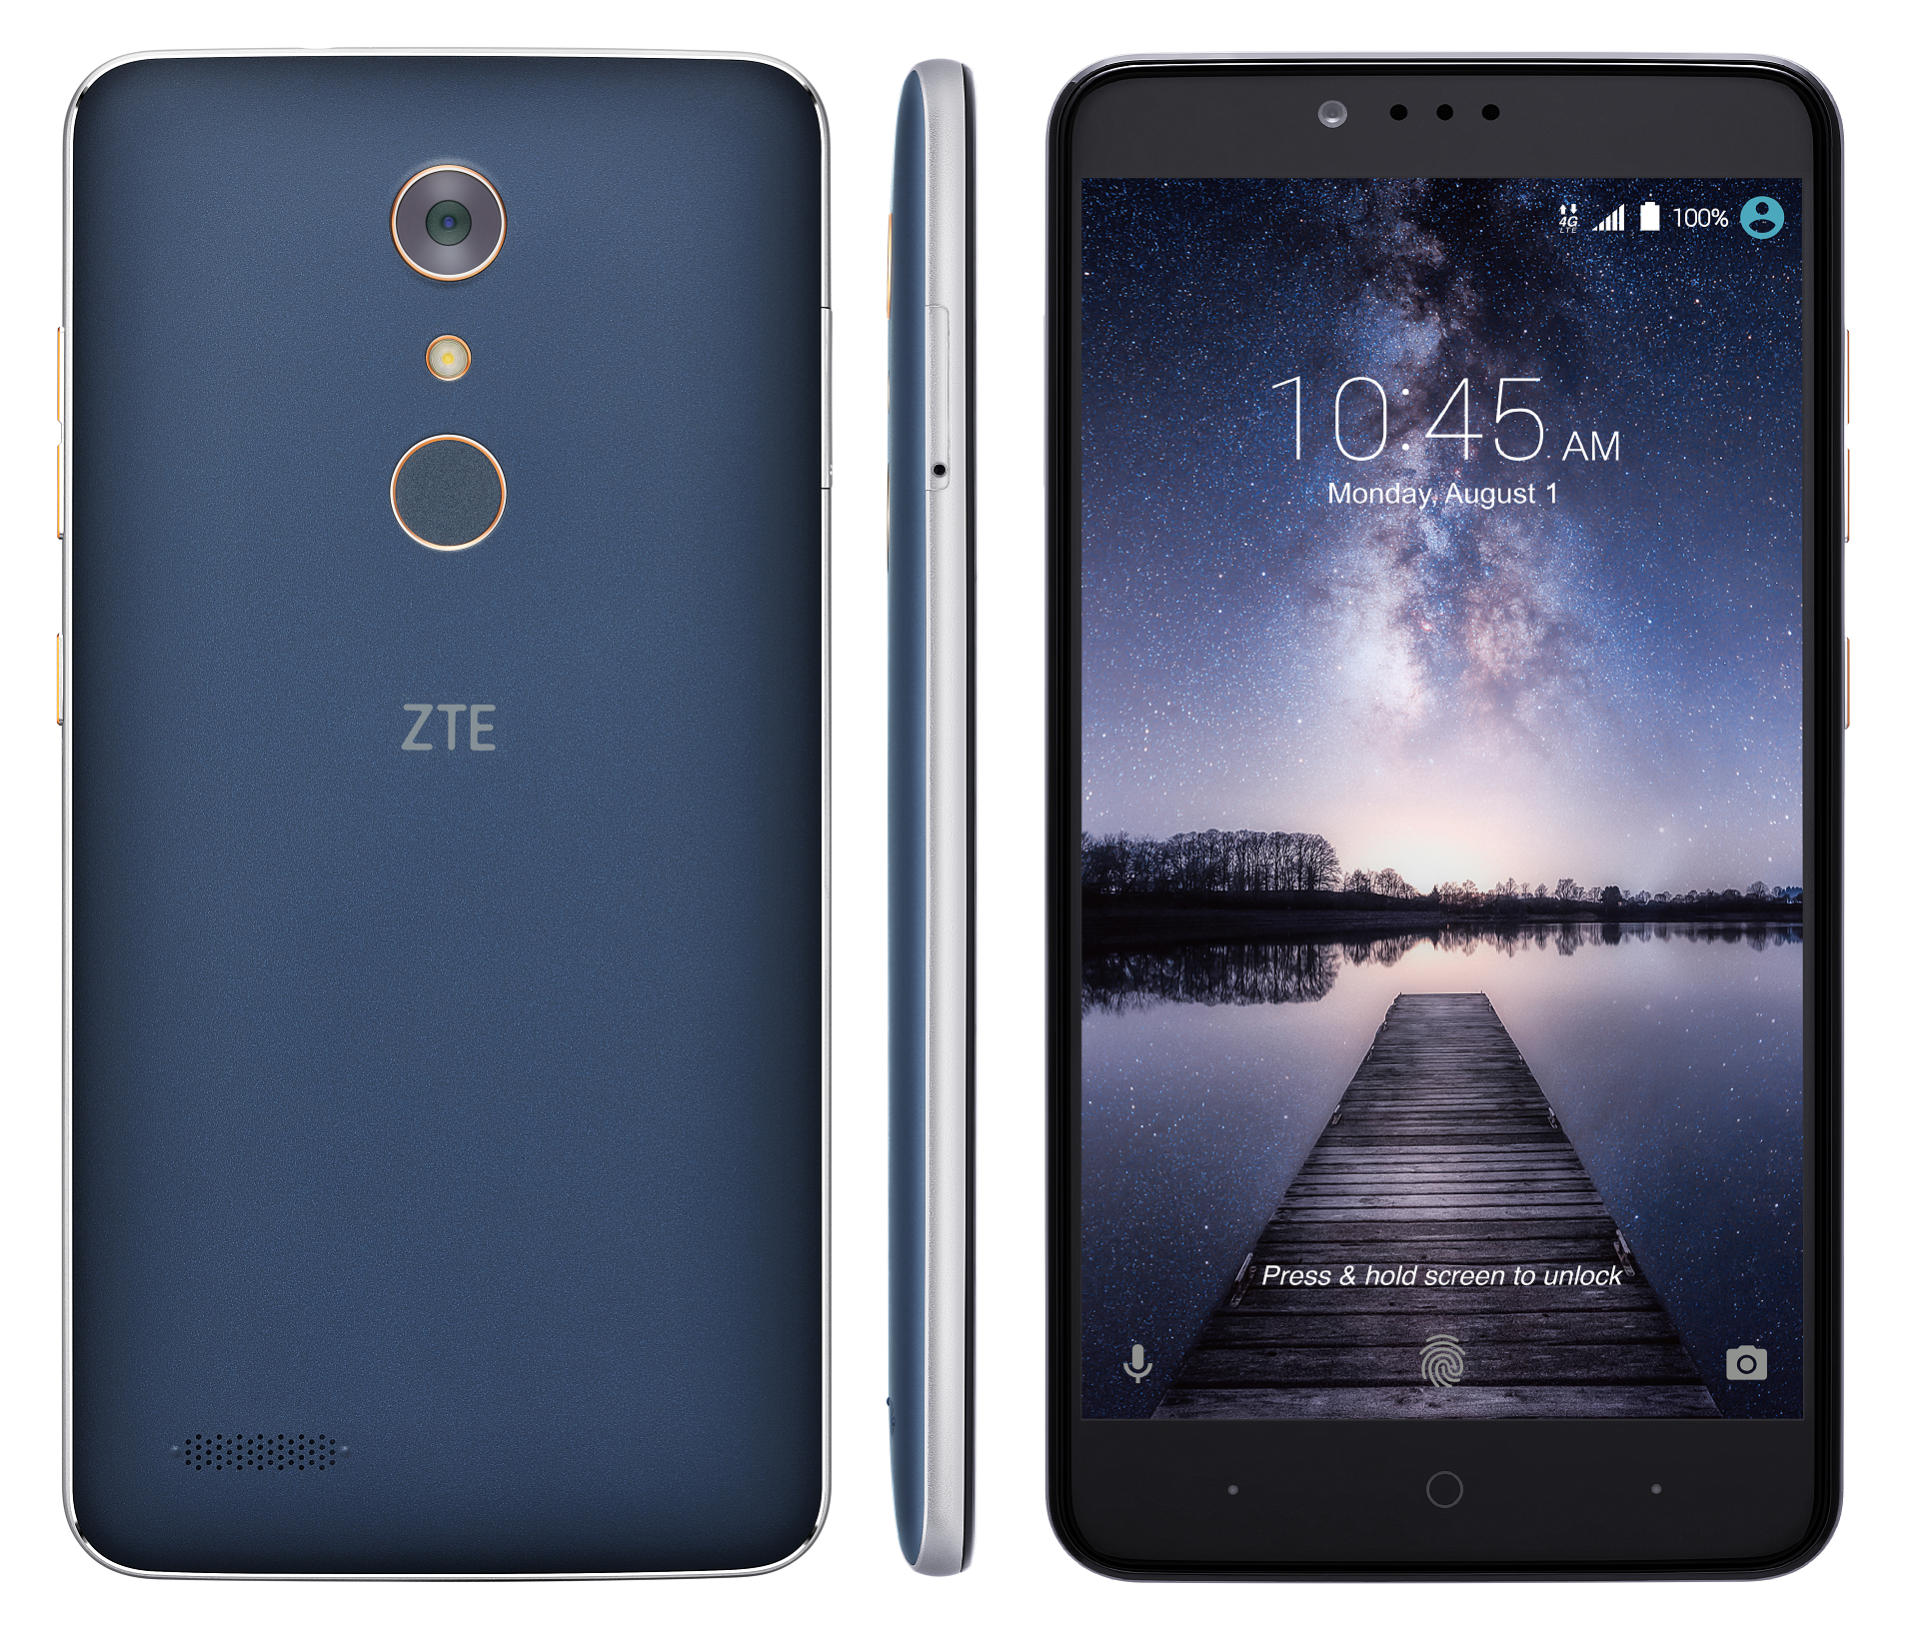 zte zmax pro themes sure focus